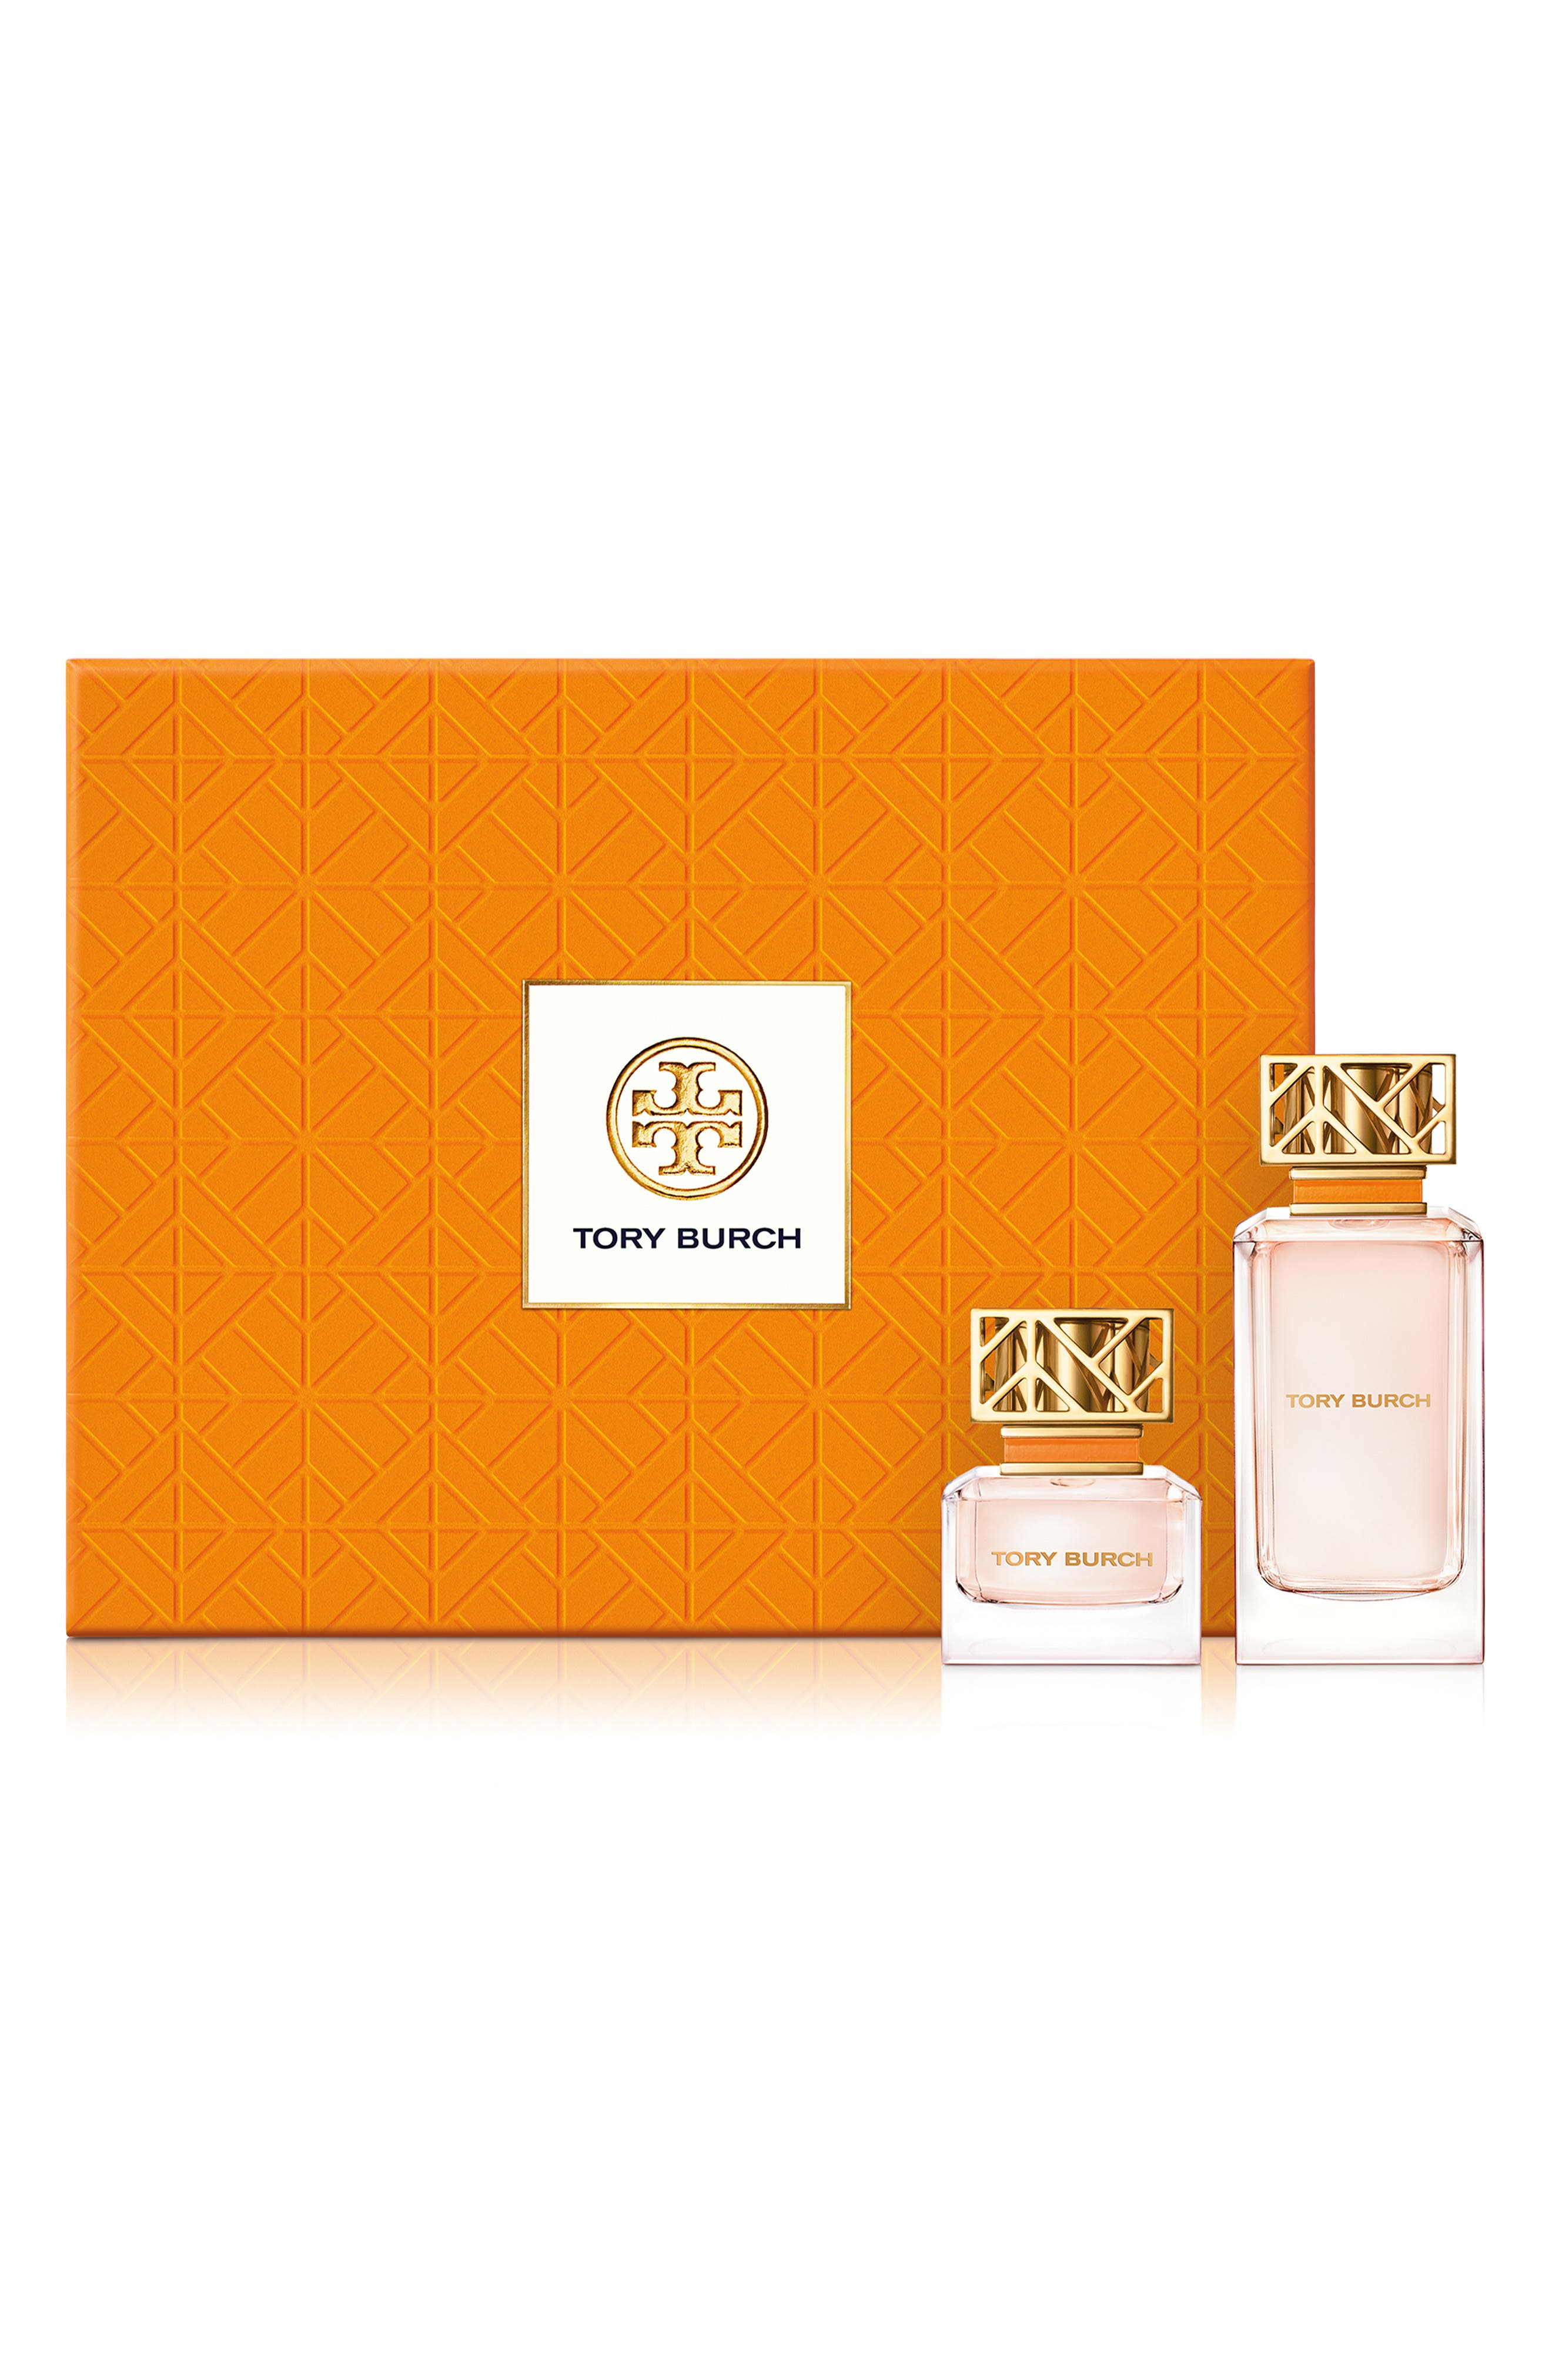 Tory Burch Fragrance Set ($195 Value)